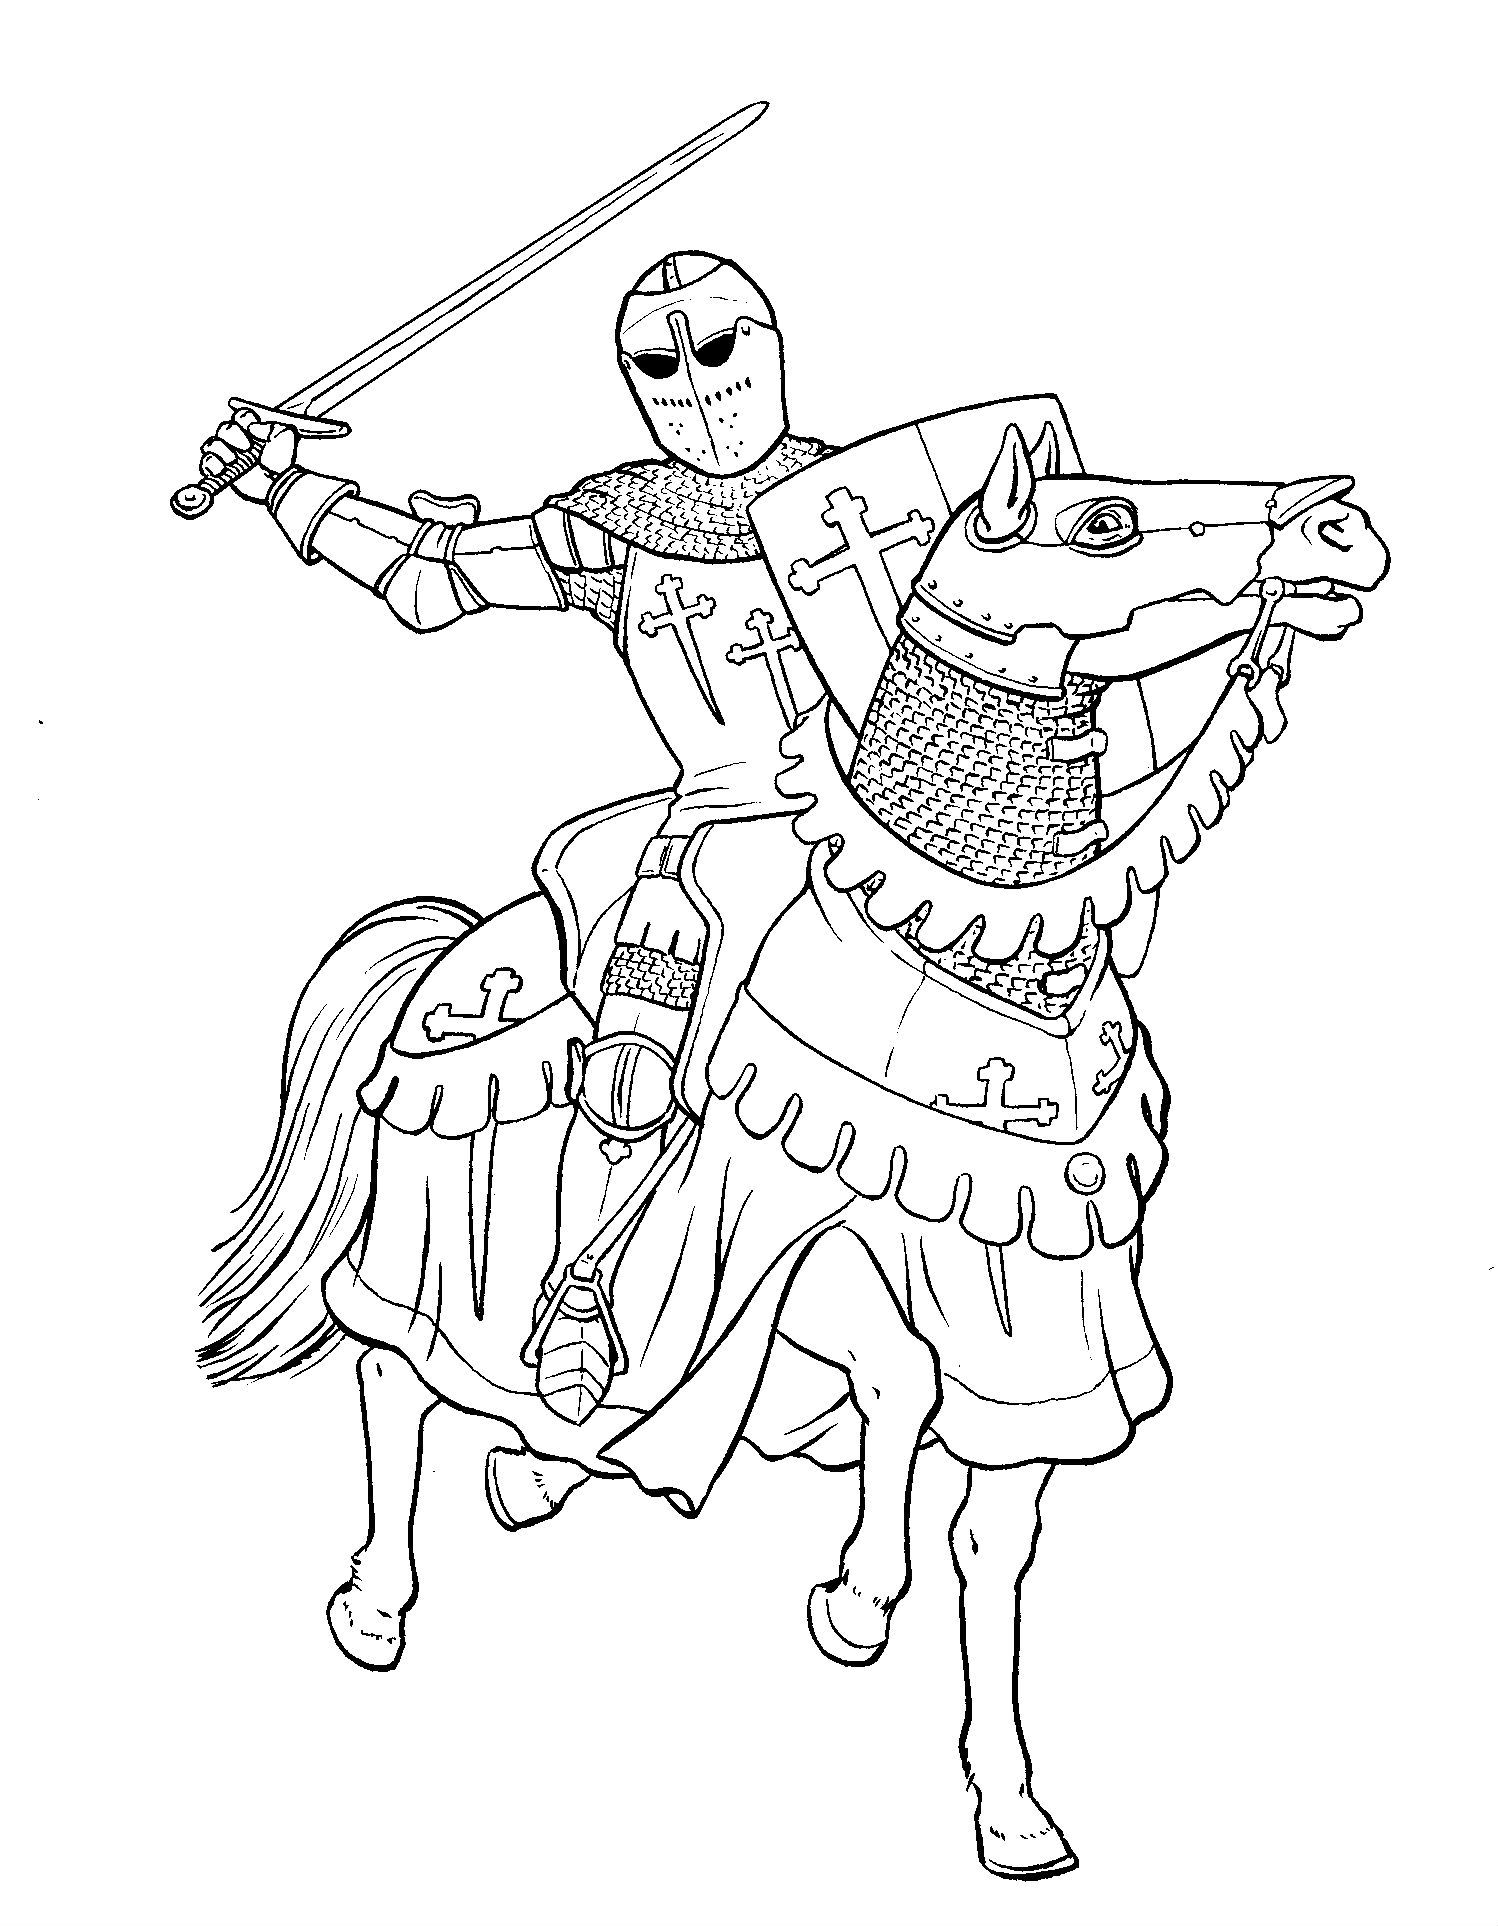 Coloring Pages Knights Free Coloring Pages Download | Xsibe lego ...